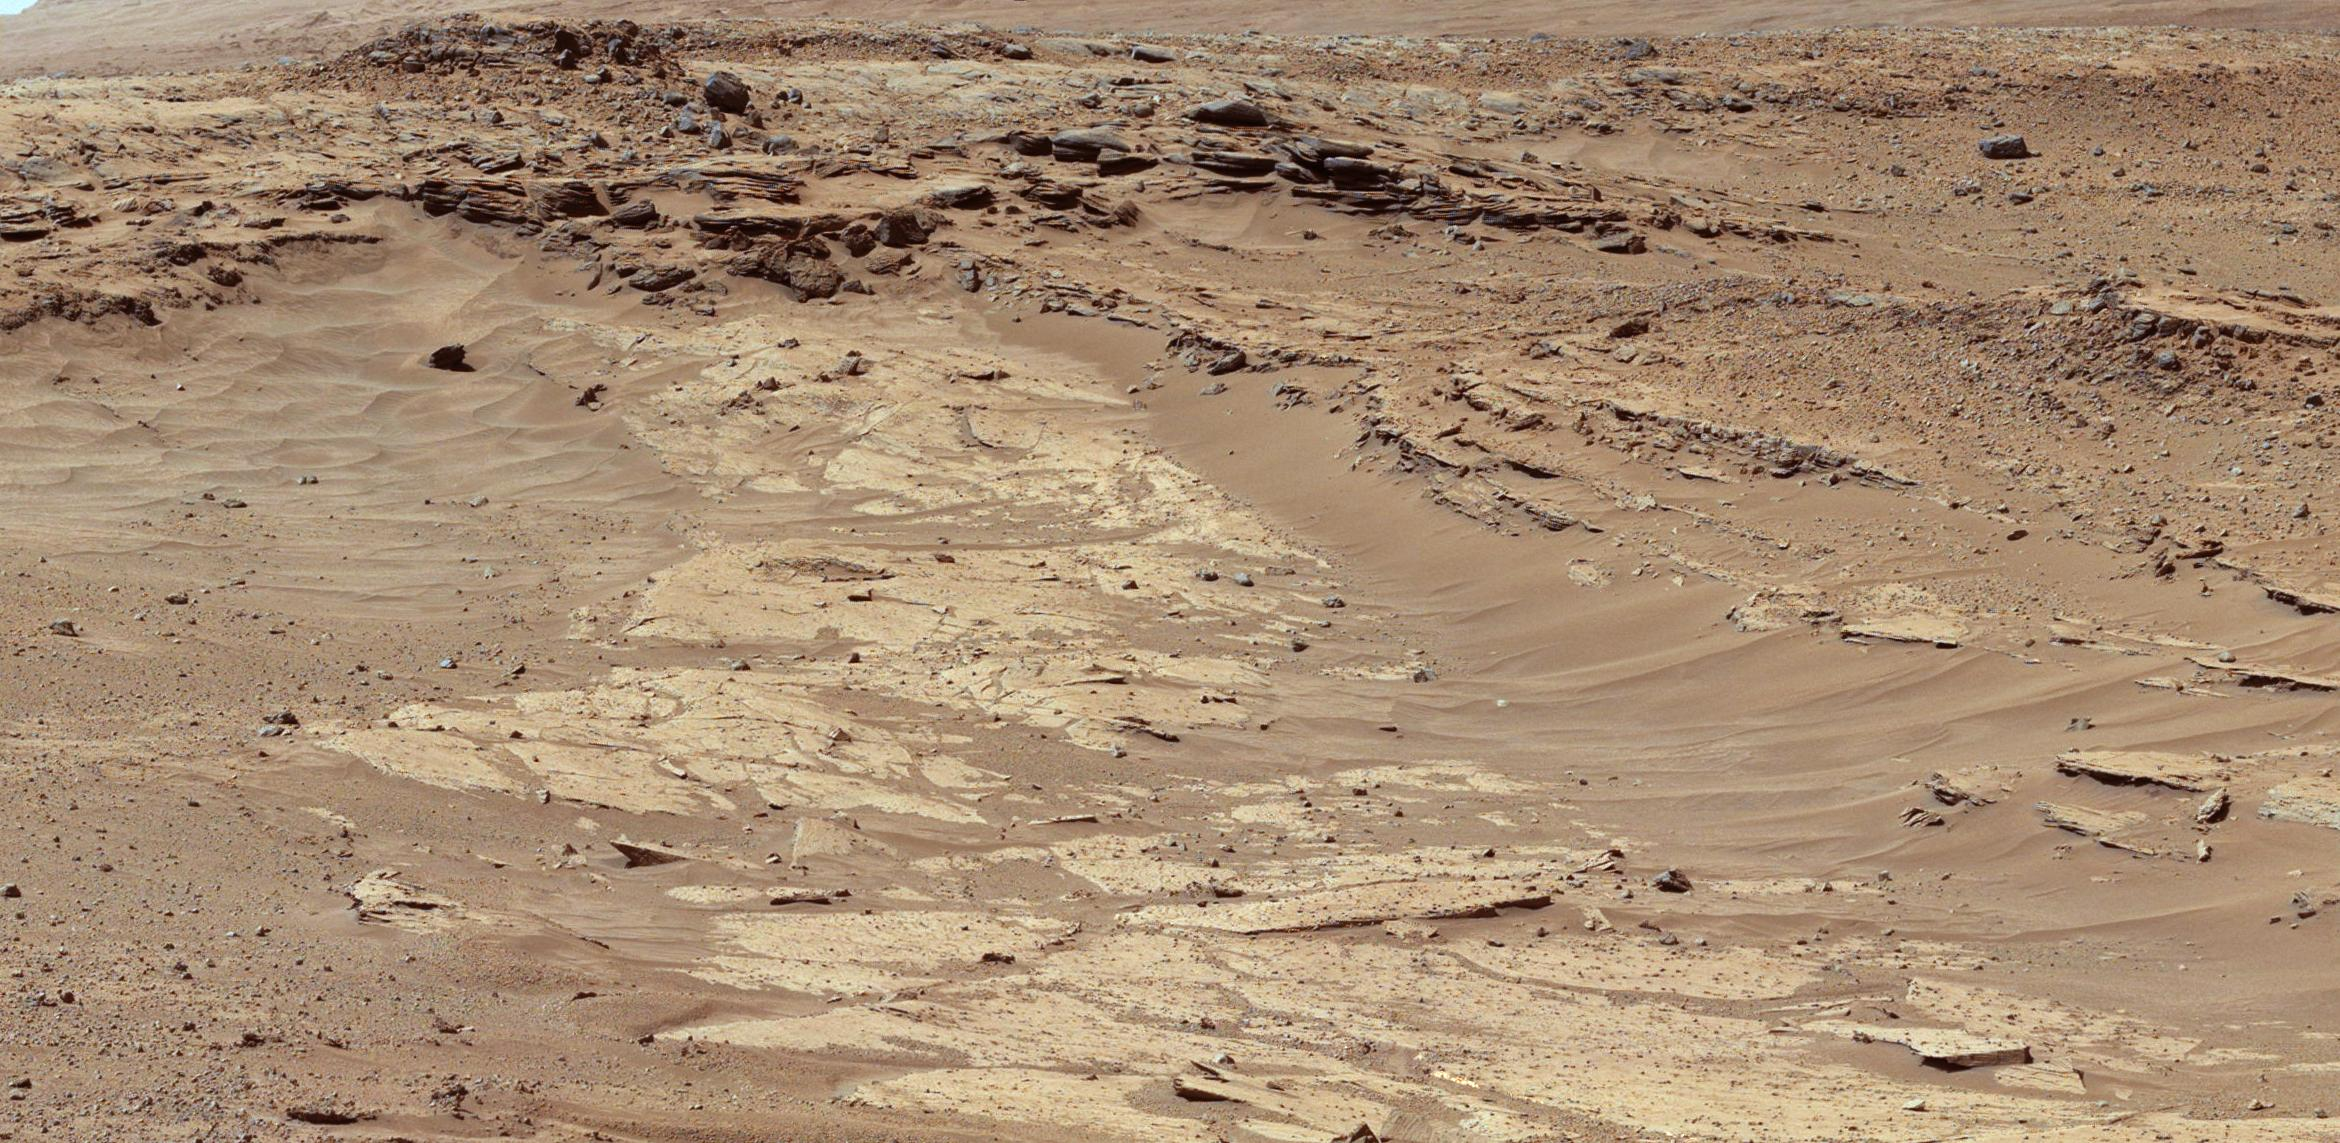 mars rover findings - photo #24